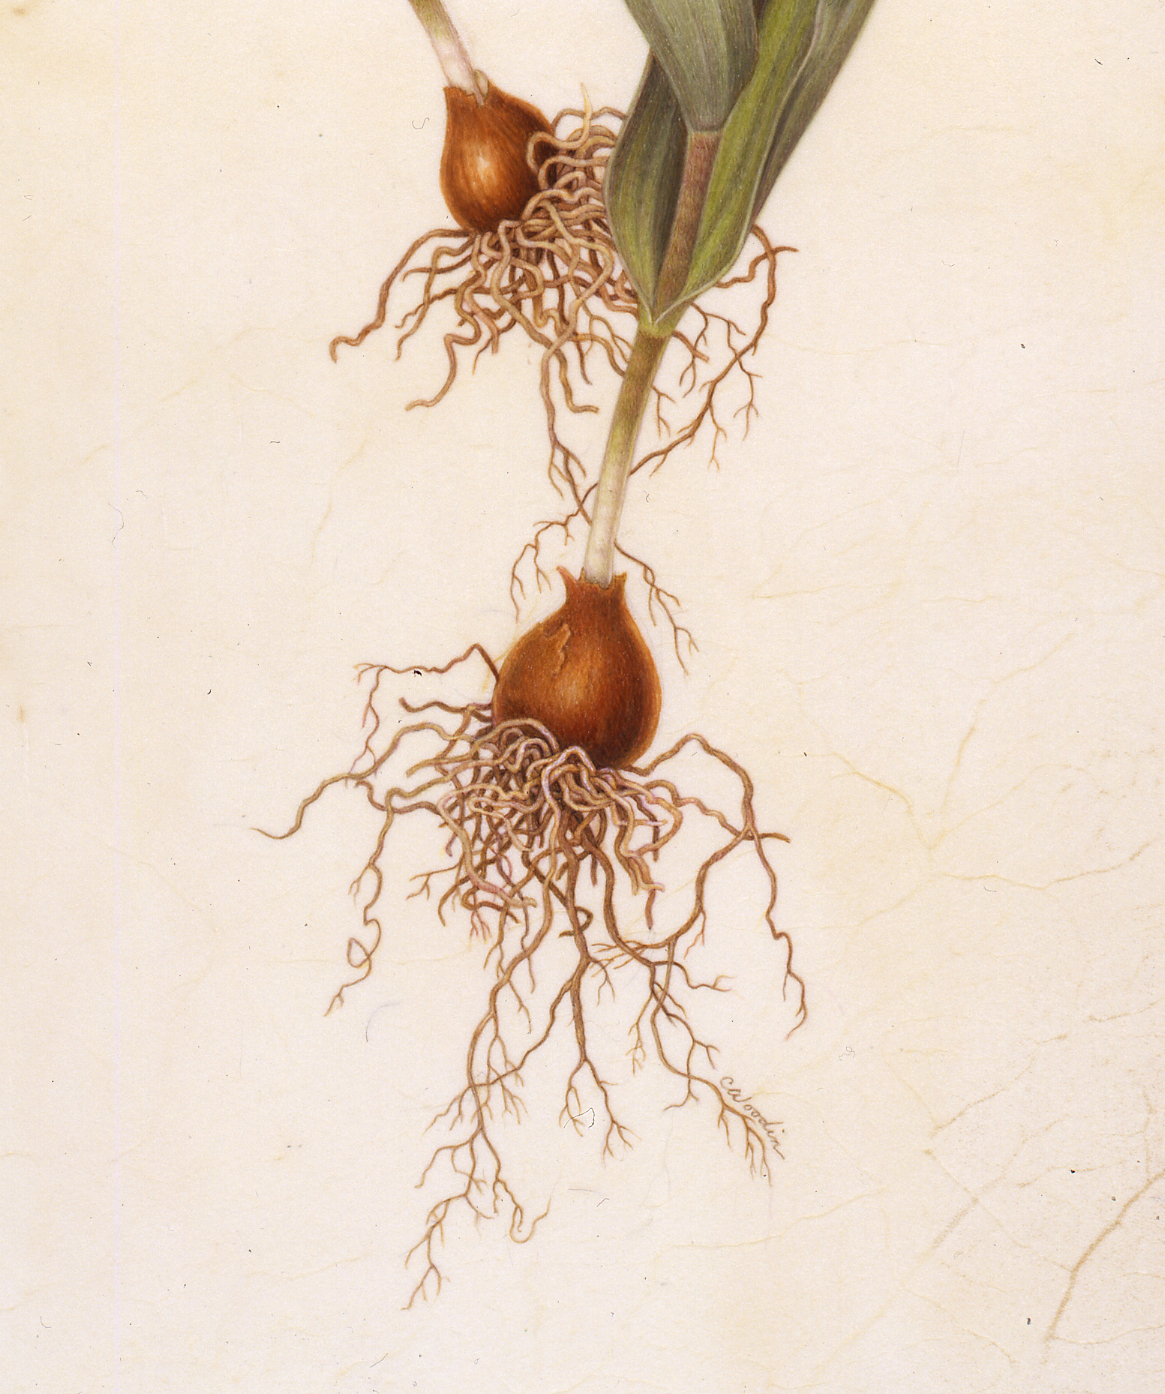 Cropped image of tulips, showing bulbs and roots. ©Carol Woodin